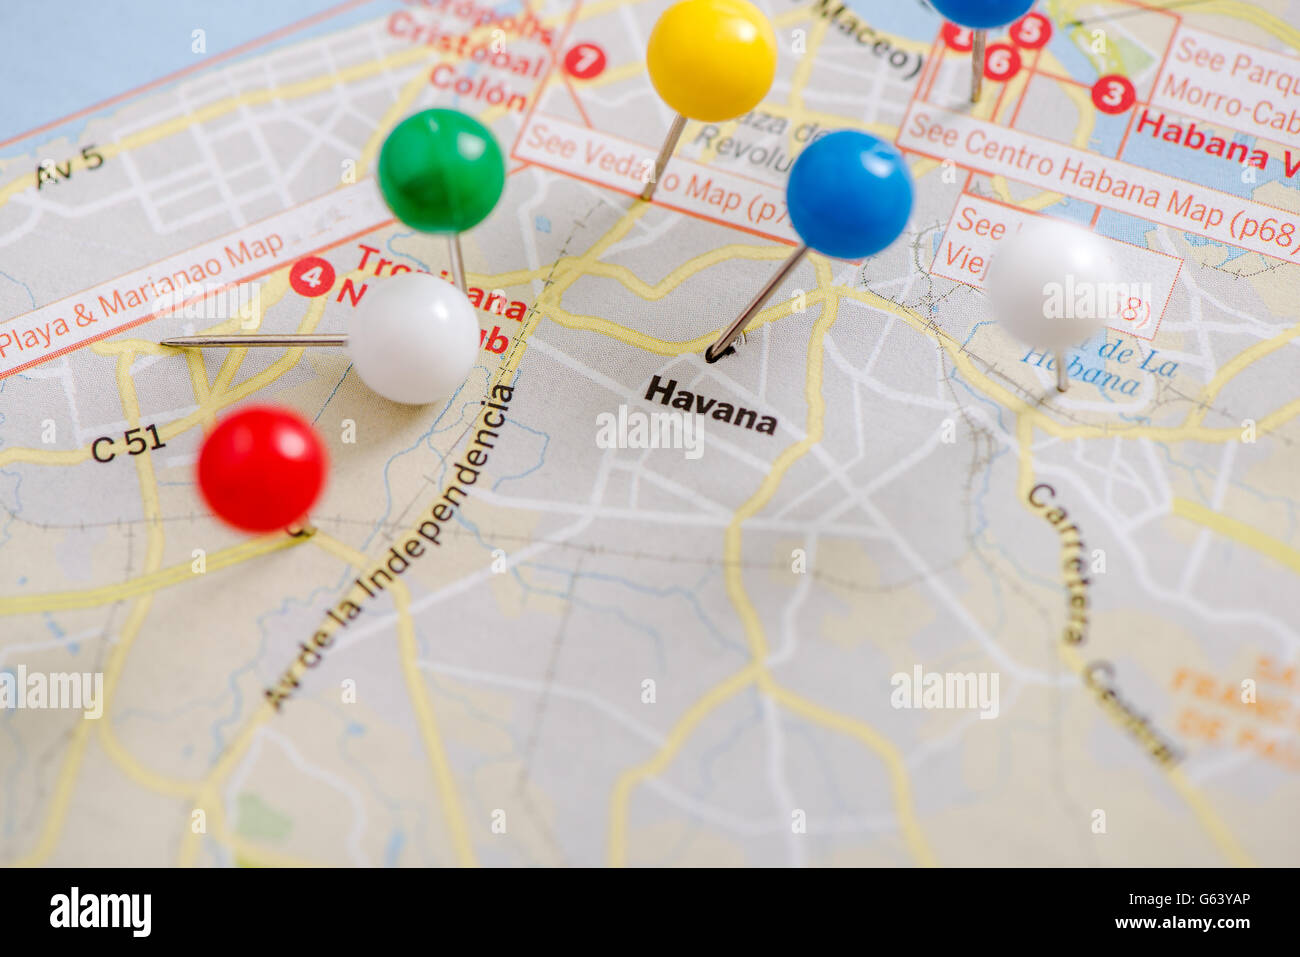 pin pointed on Havana on Cuba map, road trip planning ... on hunting maps, europe maps, germany maps, france maps, information maps, italy maps, decision making maps, transportation maps, australia maps, turkey maps, canada maps, halloween maps, asia maps, new zealand maps,